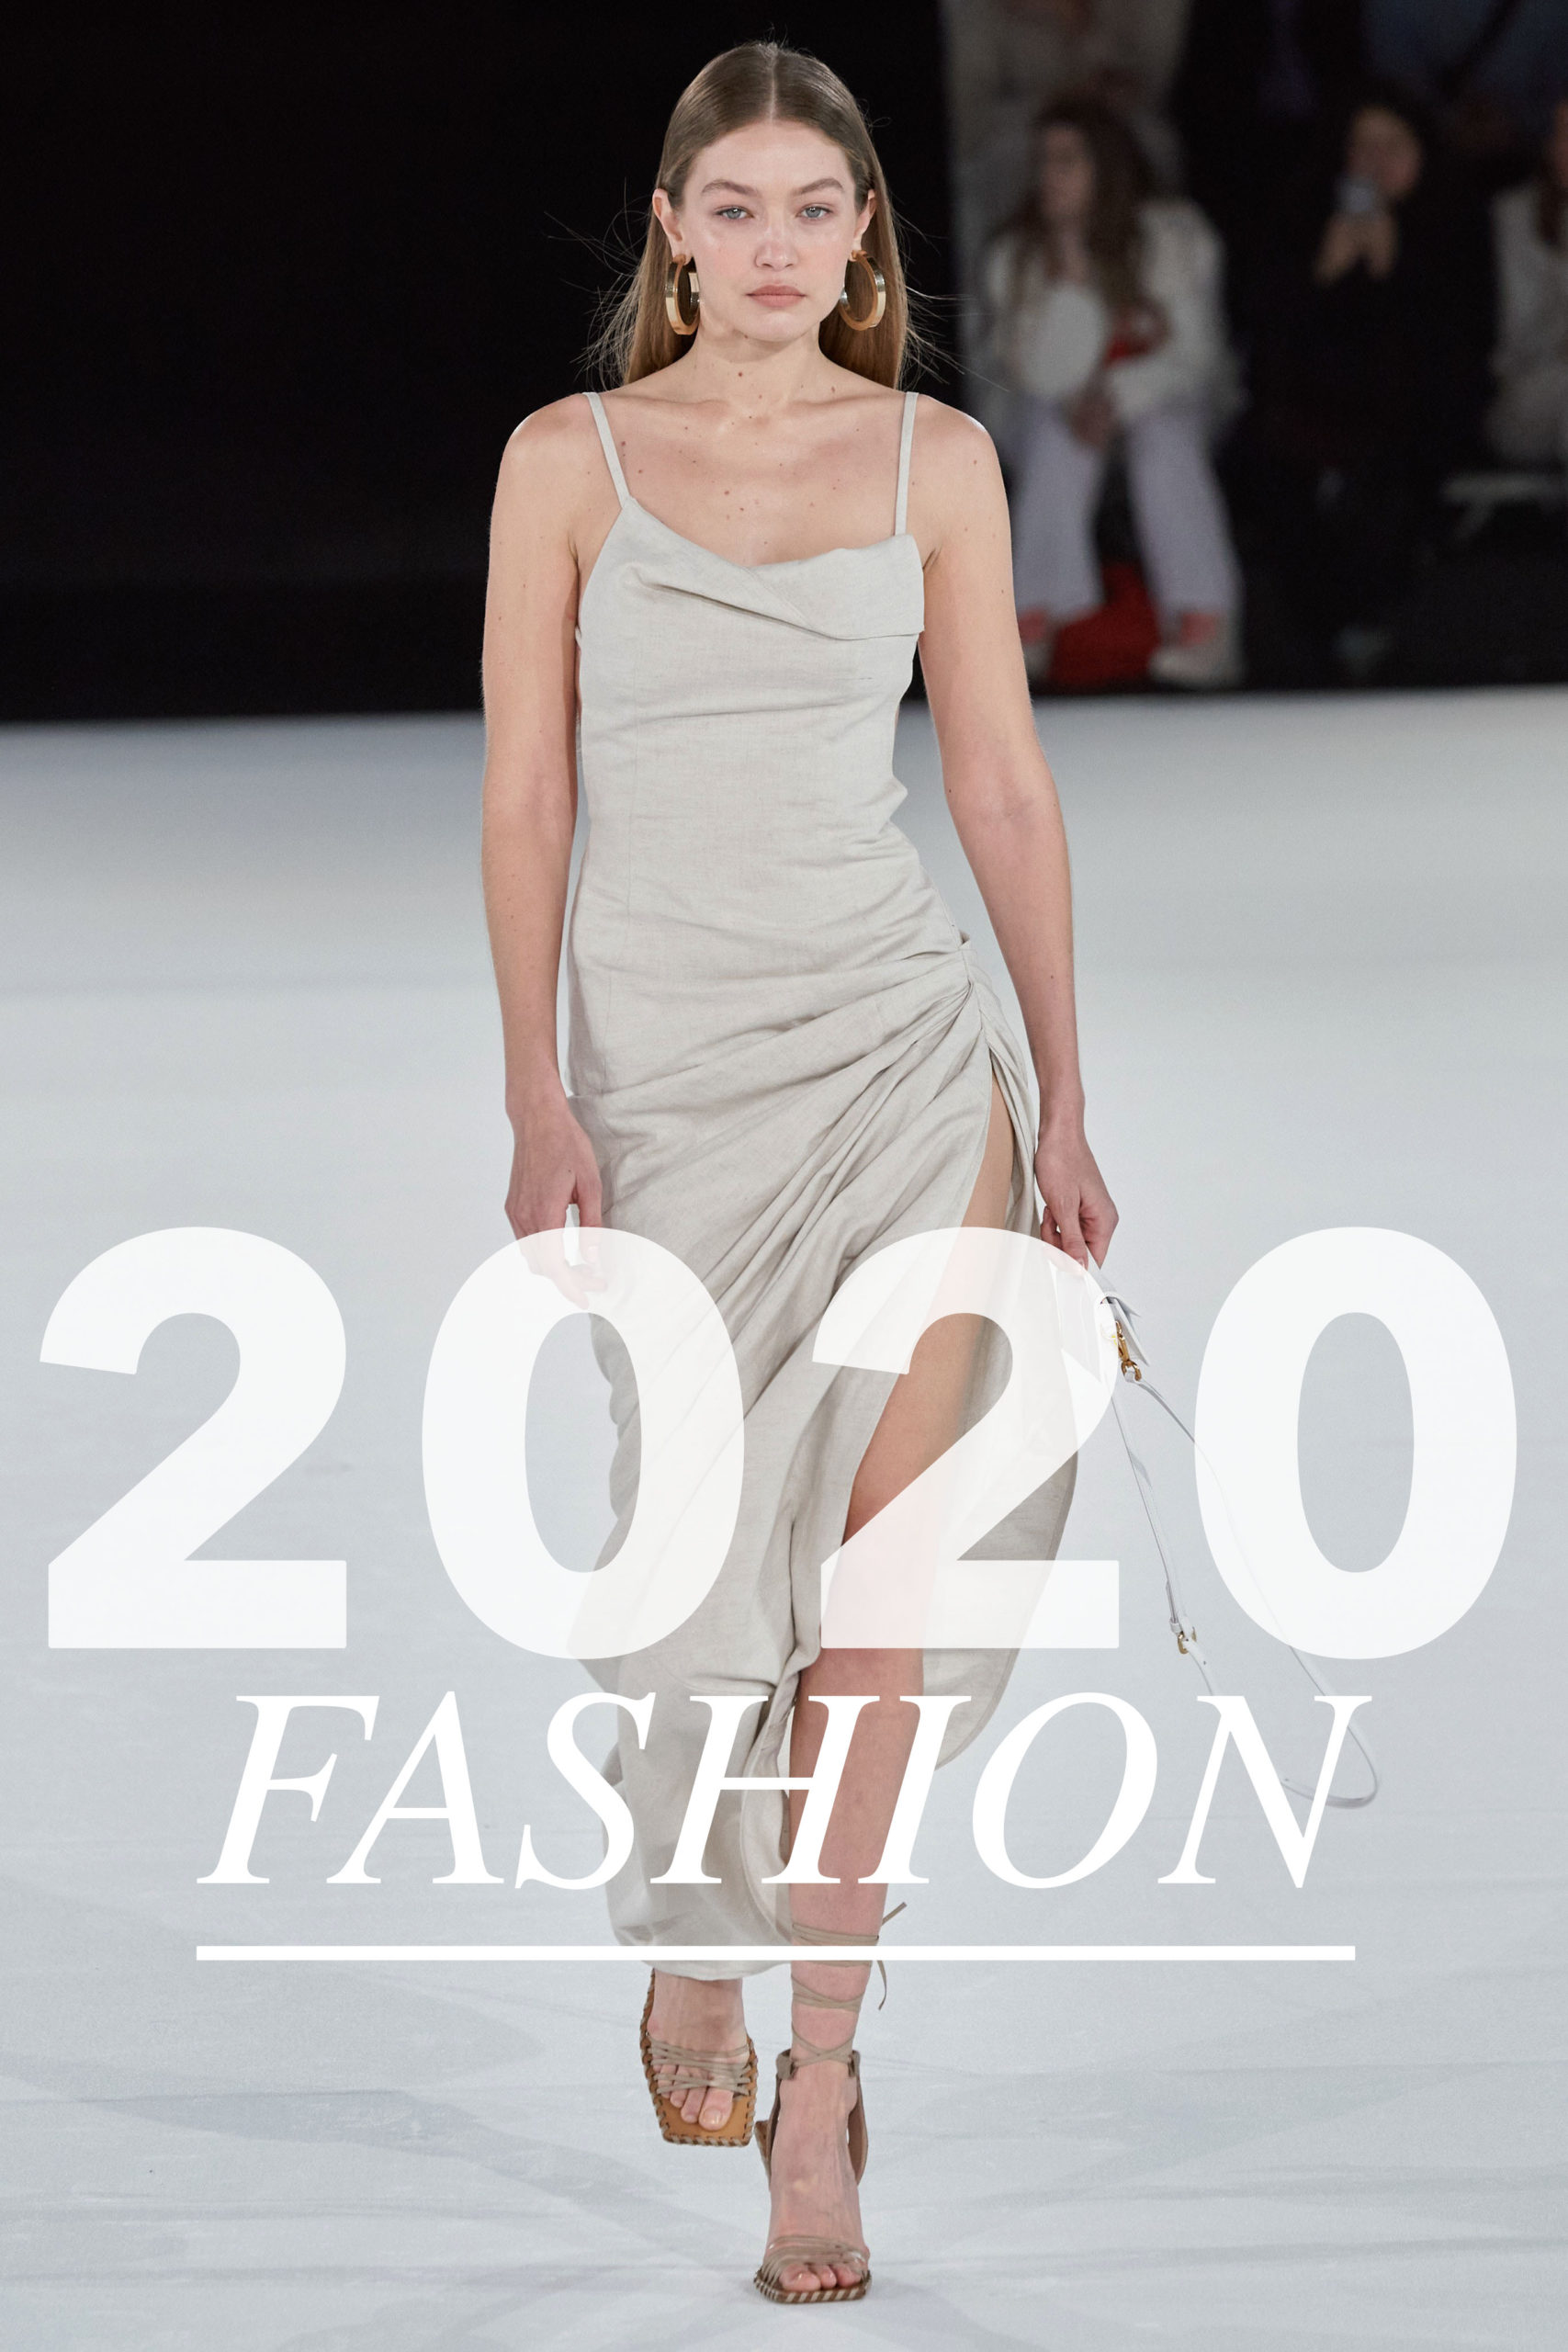 2020 FASHION FORECAST